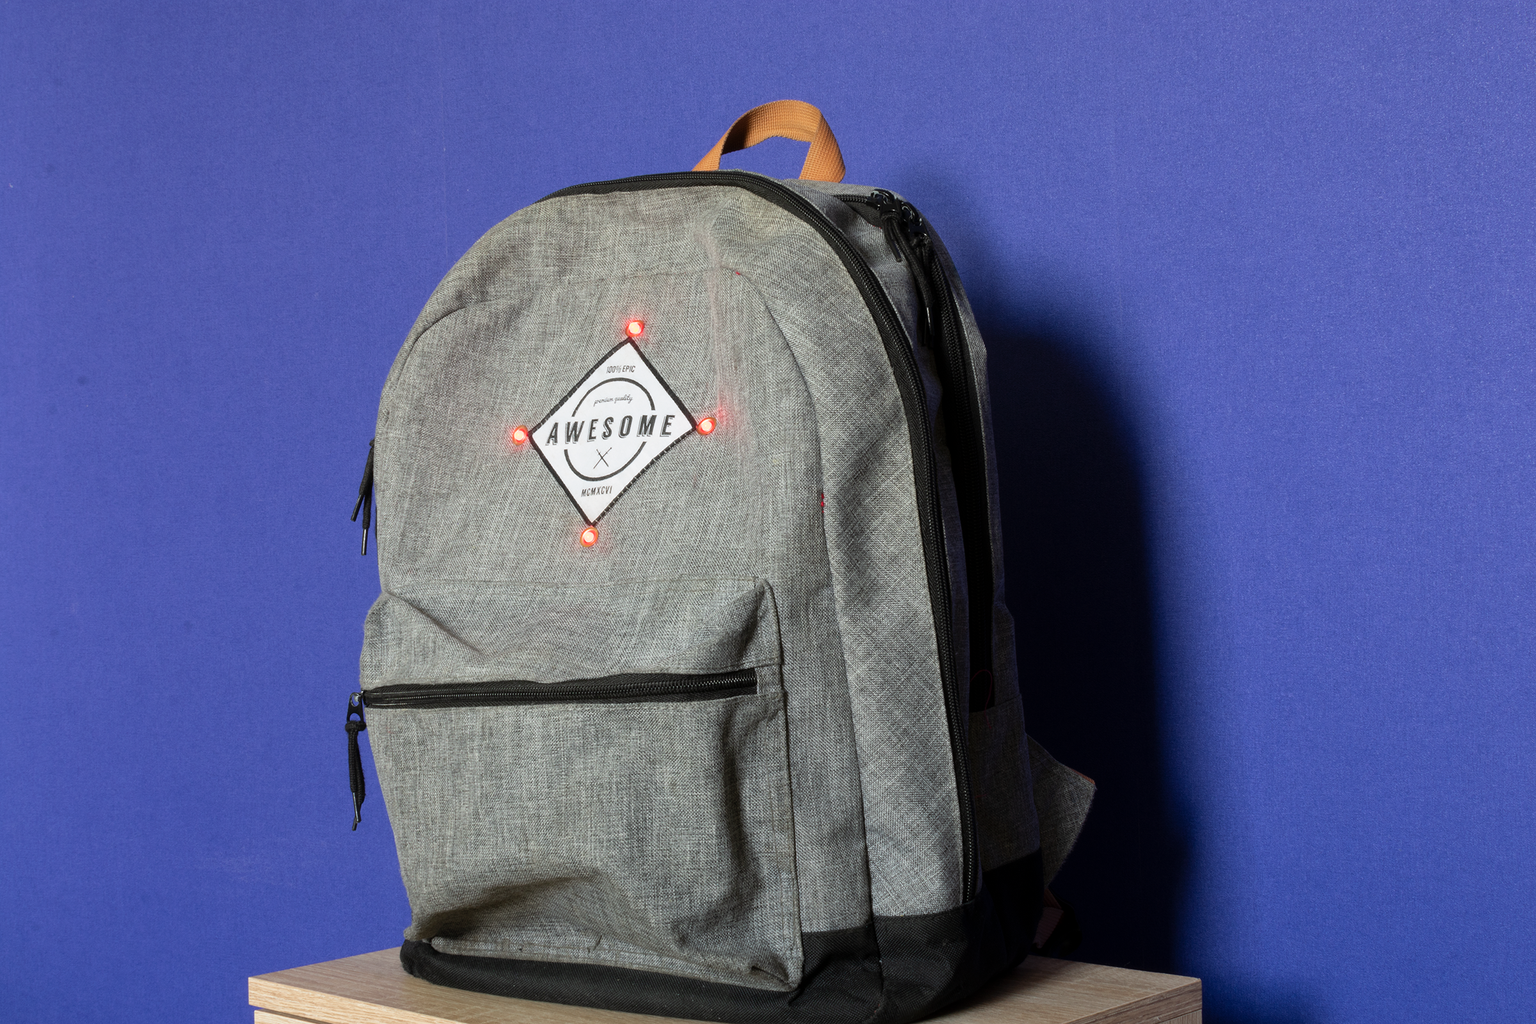 Smart Backpack With Gps Tracking and Automatic Lights